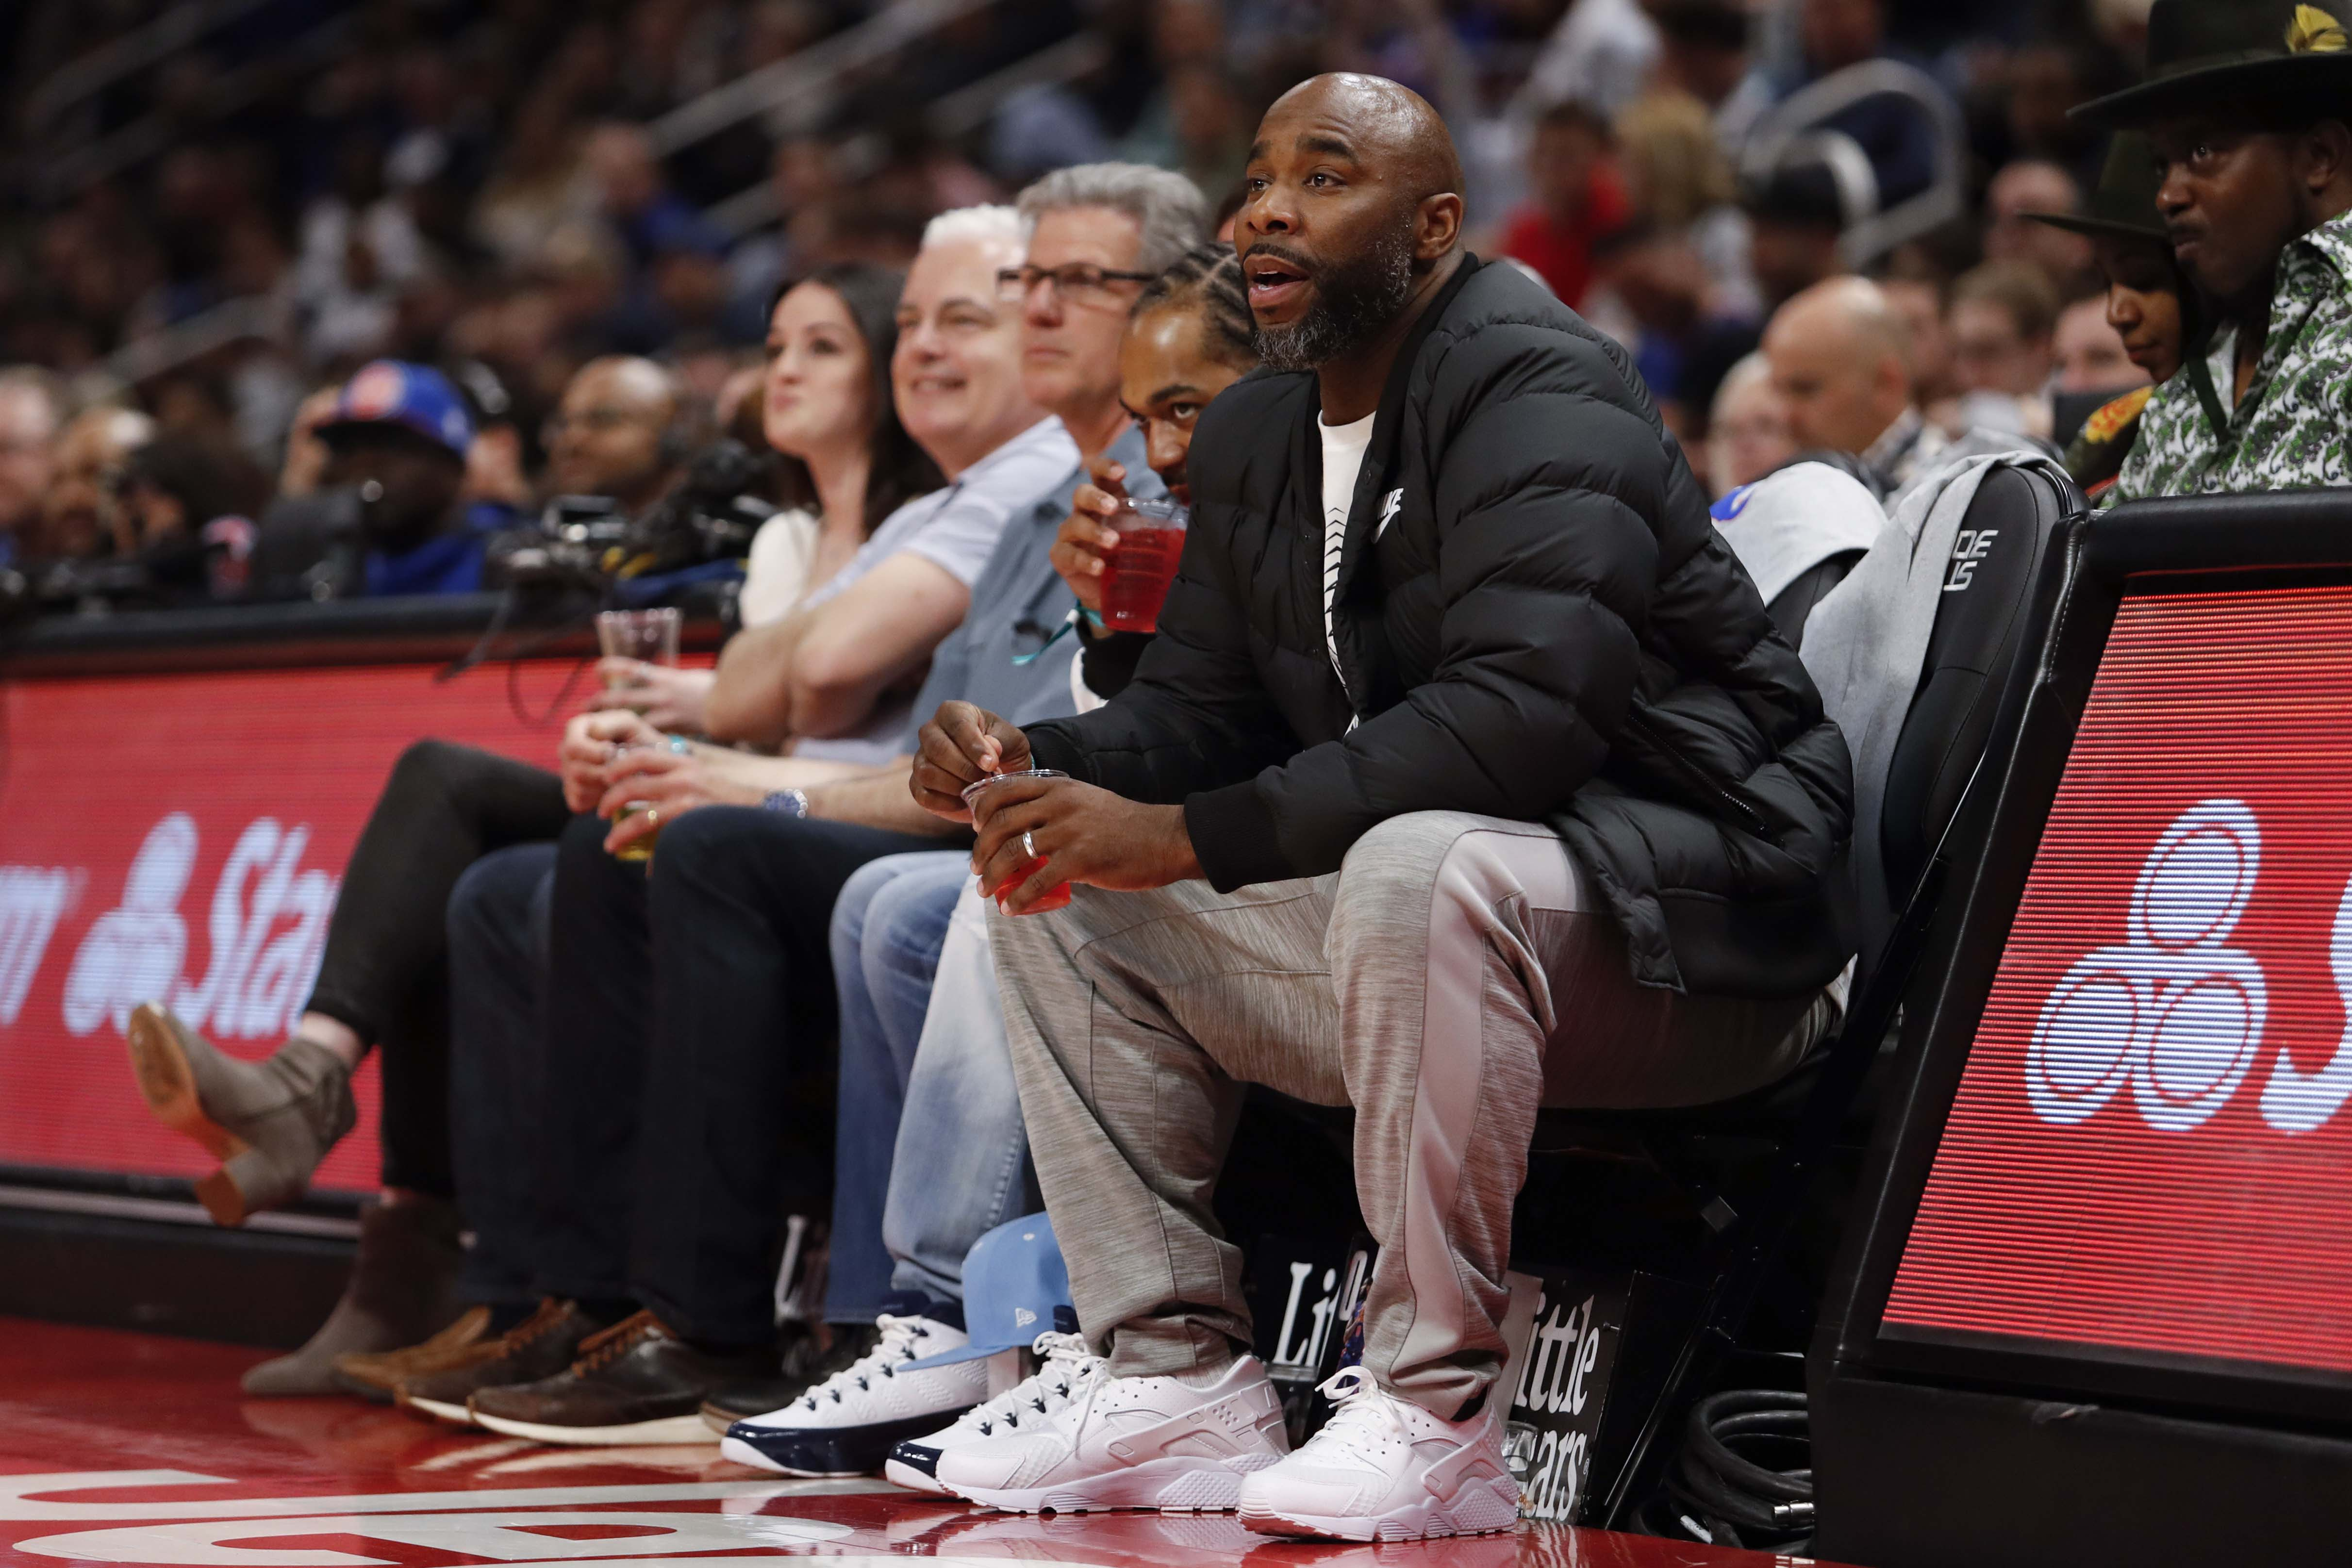 Apr 7, 2019; Detroit, MI, USA; Former professional basketball player Mateen Cleaves sits in the front row during the third quarter in the game between the Detroit Pistons and the Charlotte Hornets at Little Caesars Arena. Mandatory Credit: Raj Mehta-USA TODAY Sports